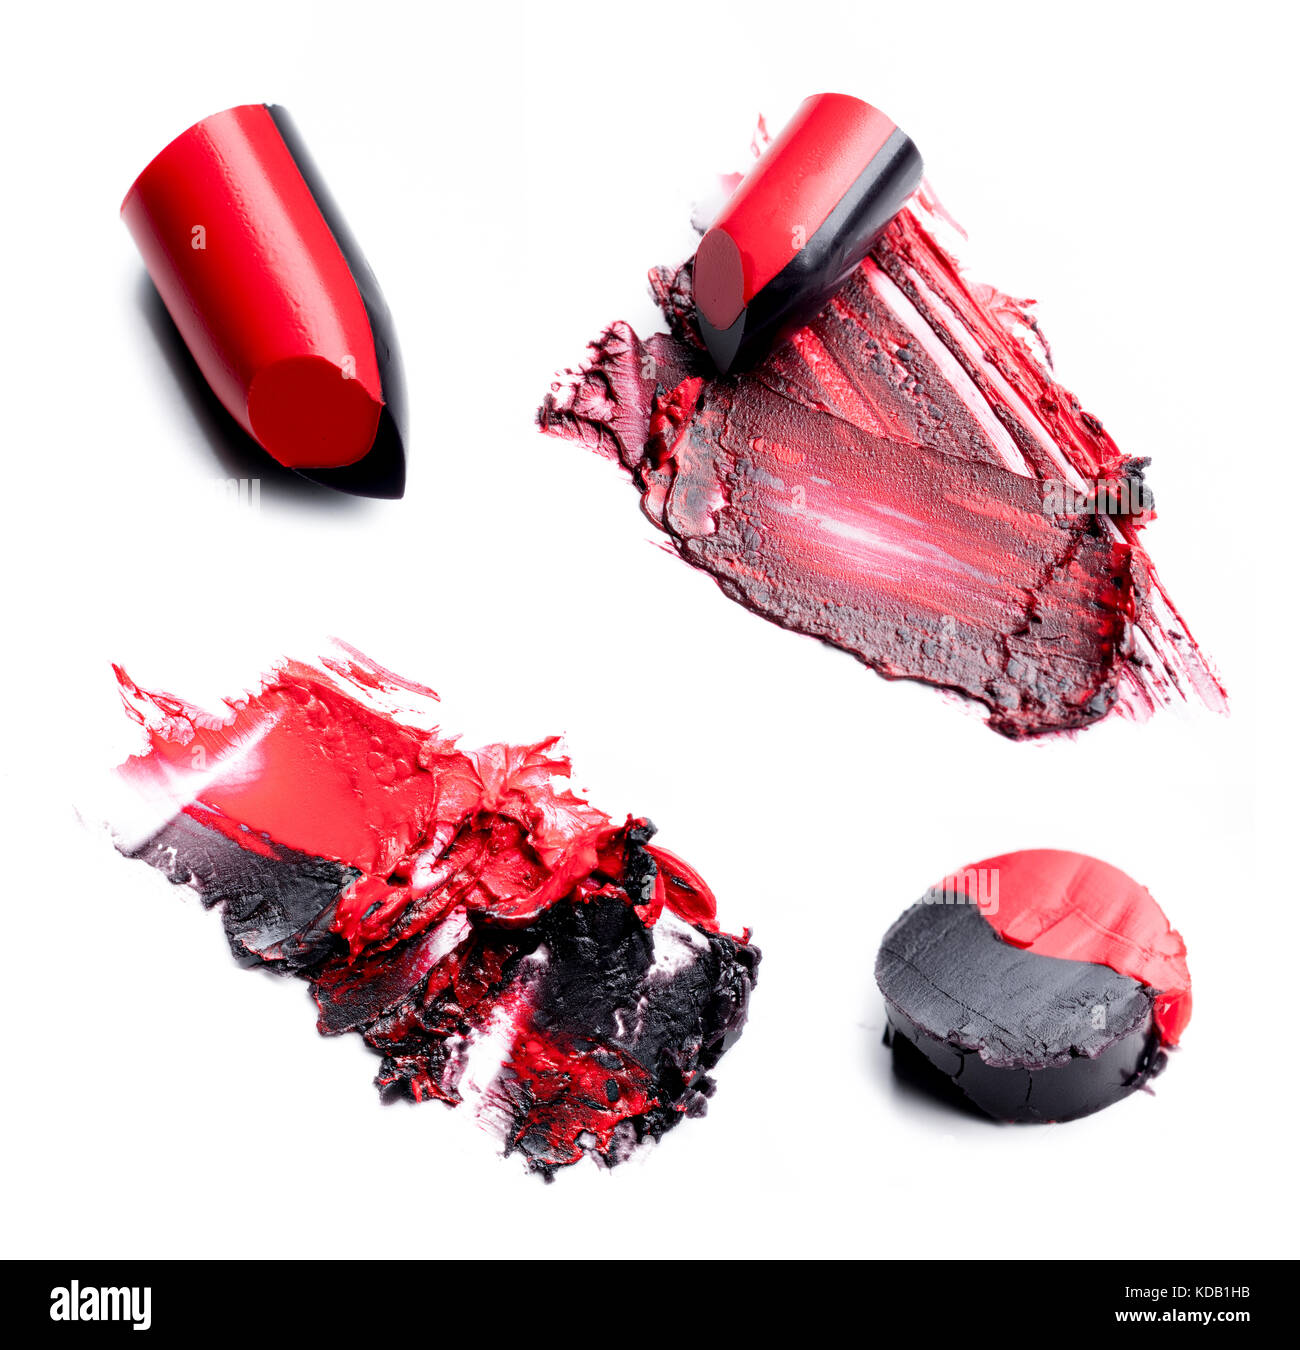 Collection of two tones crushed lipstick on a white background - Stock Image